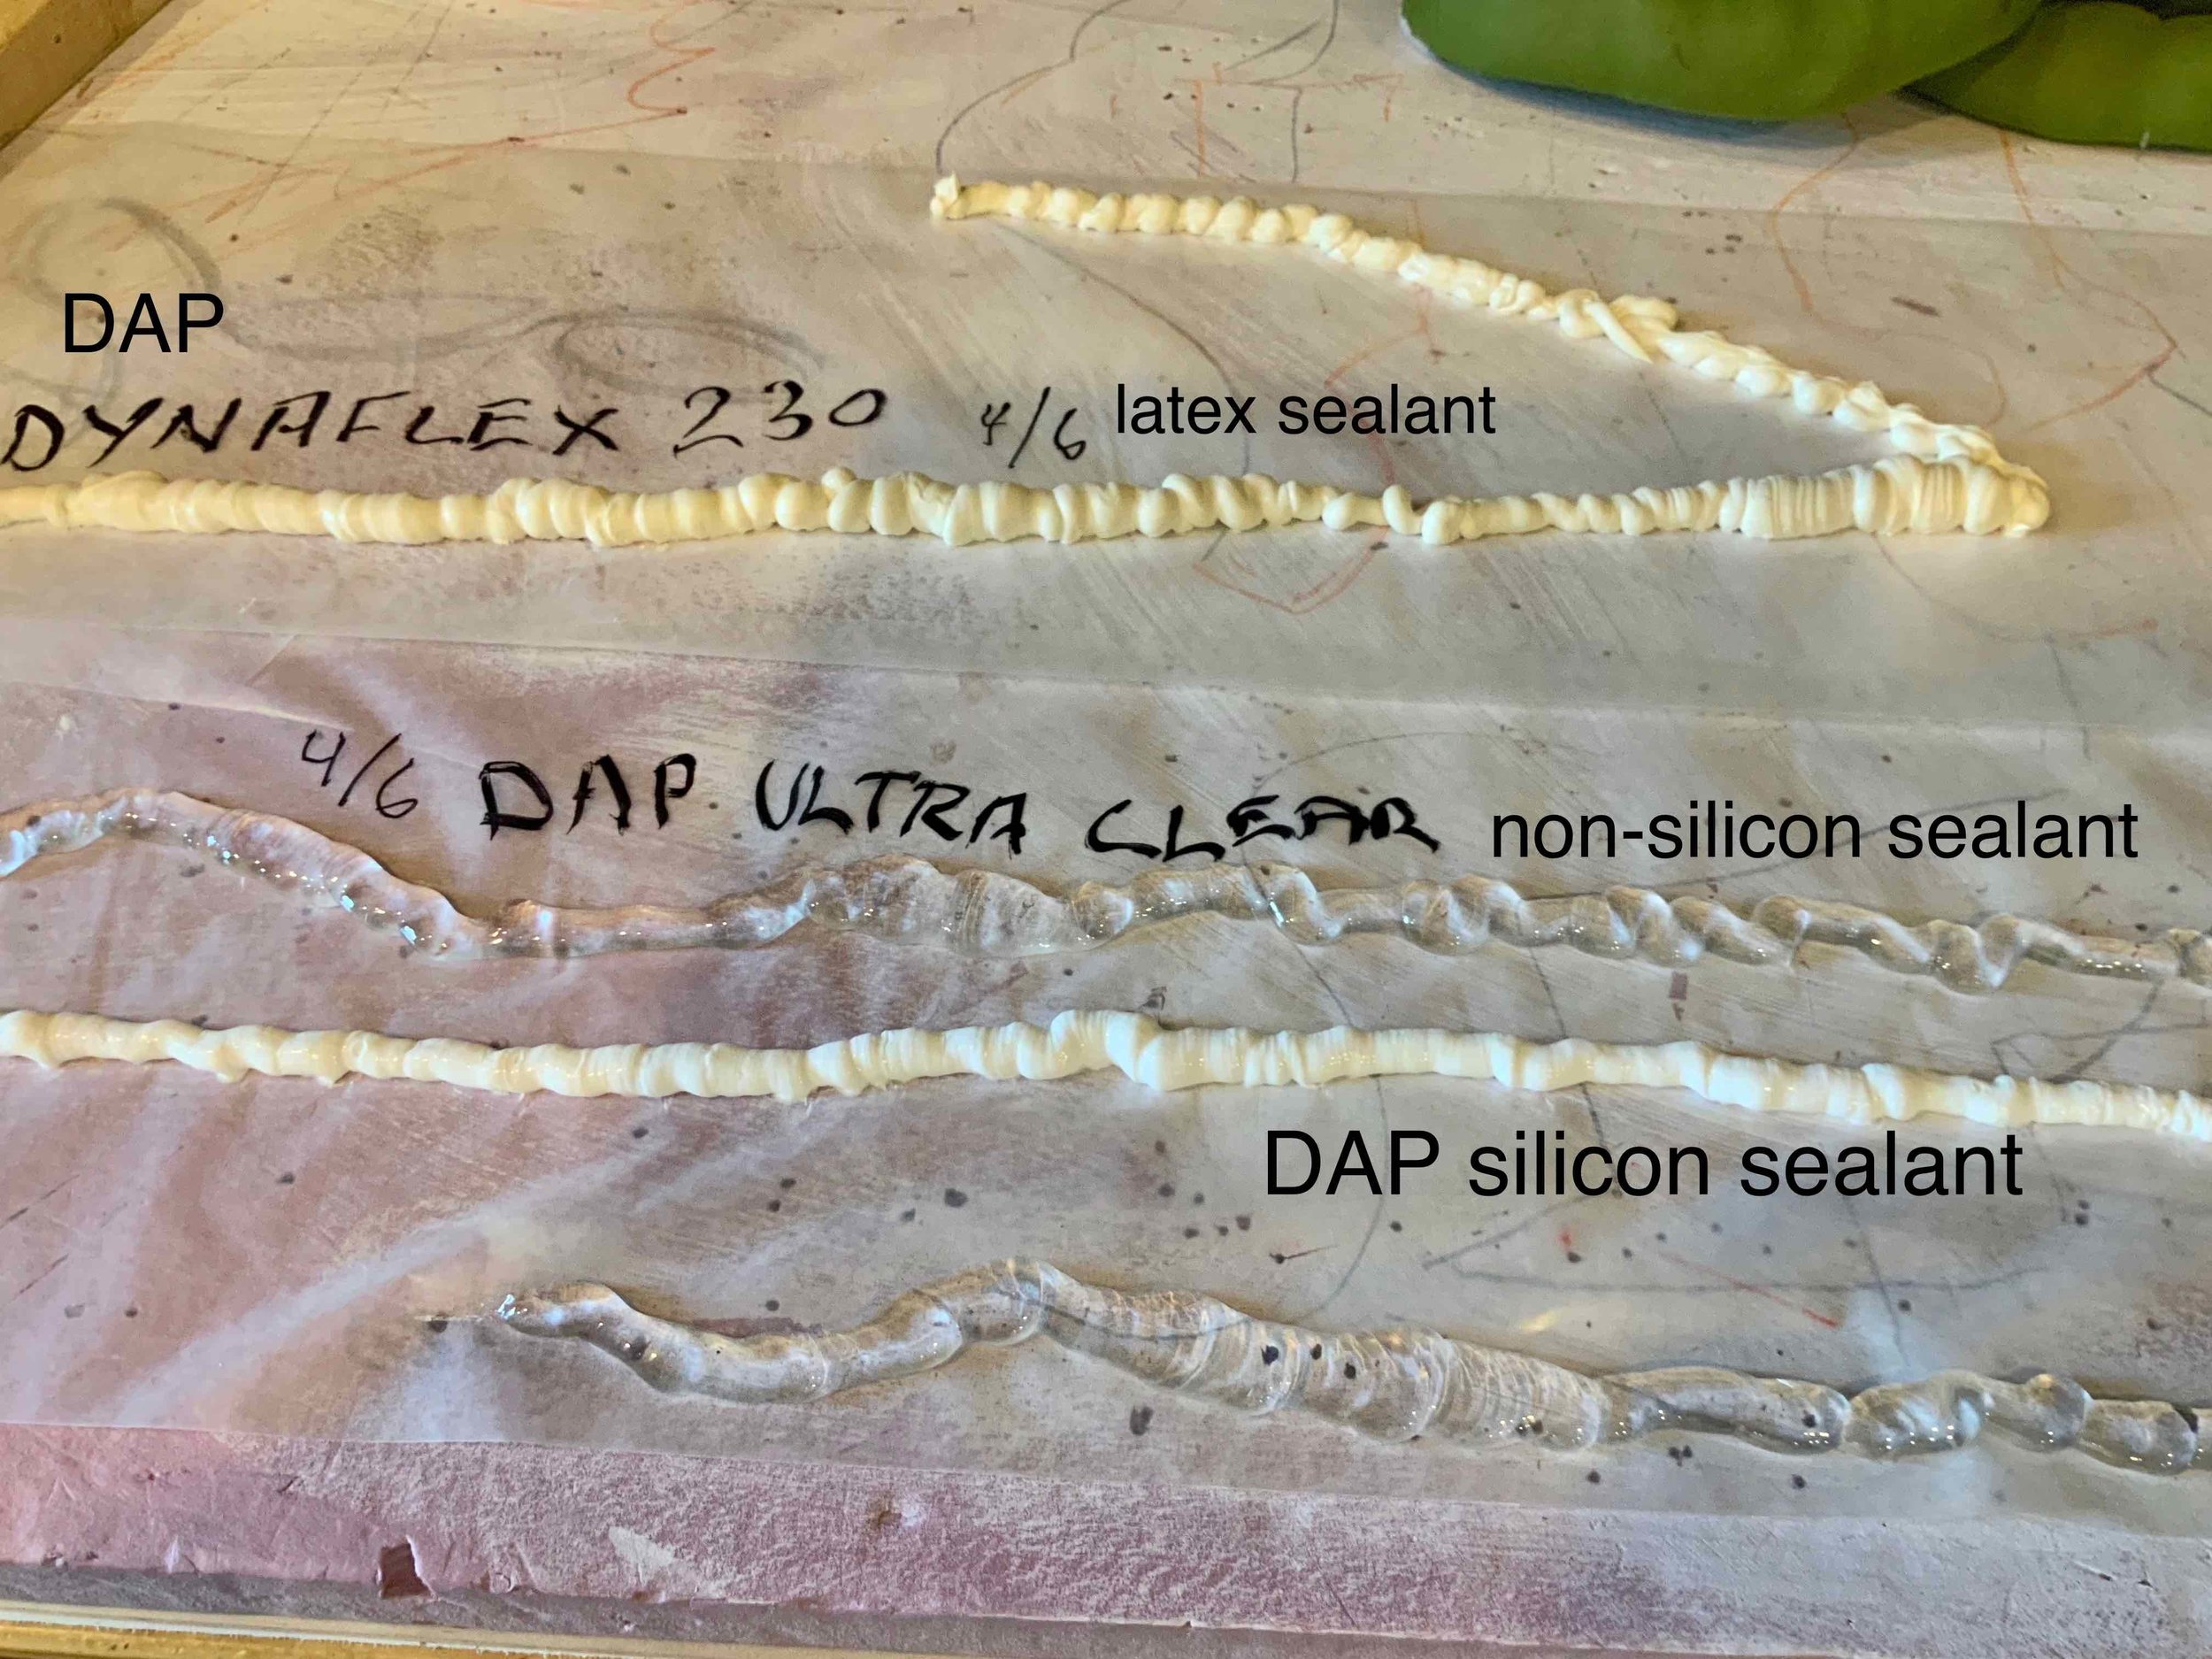 Next, we tried bathroom sealants as cores. Below the white DAP silicon sealant is another length of the DAP Ultra Clear.  The Ultra Clear worked best for a couple of reasons. We could more easily squeeze out a wonky, fat then thin bead. When cured, it felt the strongest of the 3.  The latex bead at its fattest never really felt fully cured and stayed squishy soft. It seemed weak.